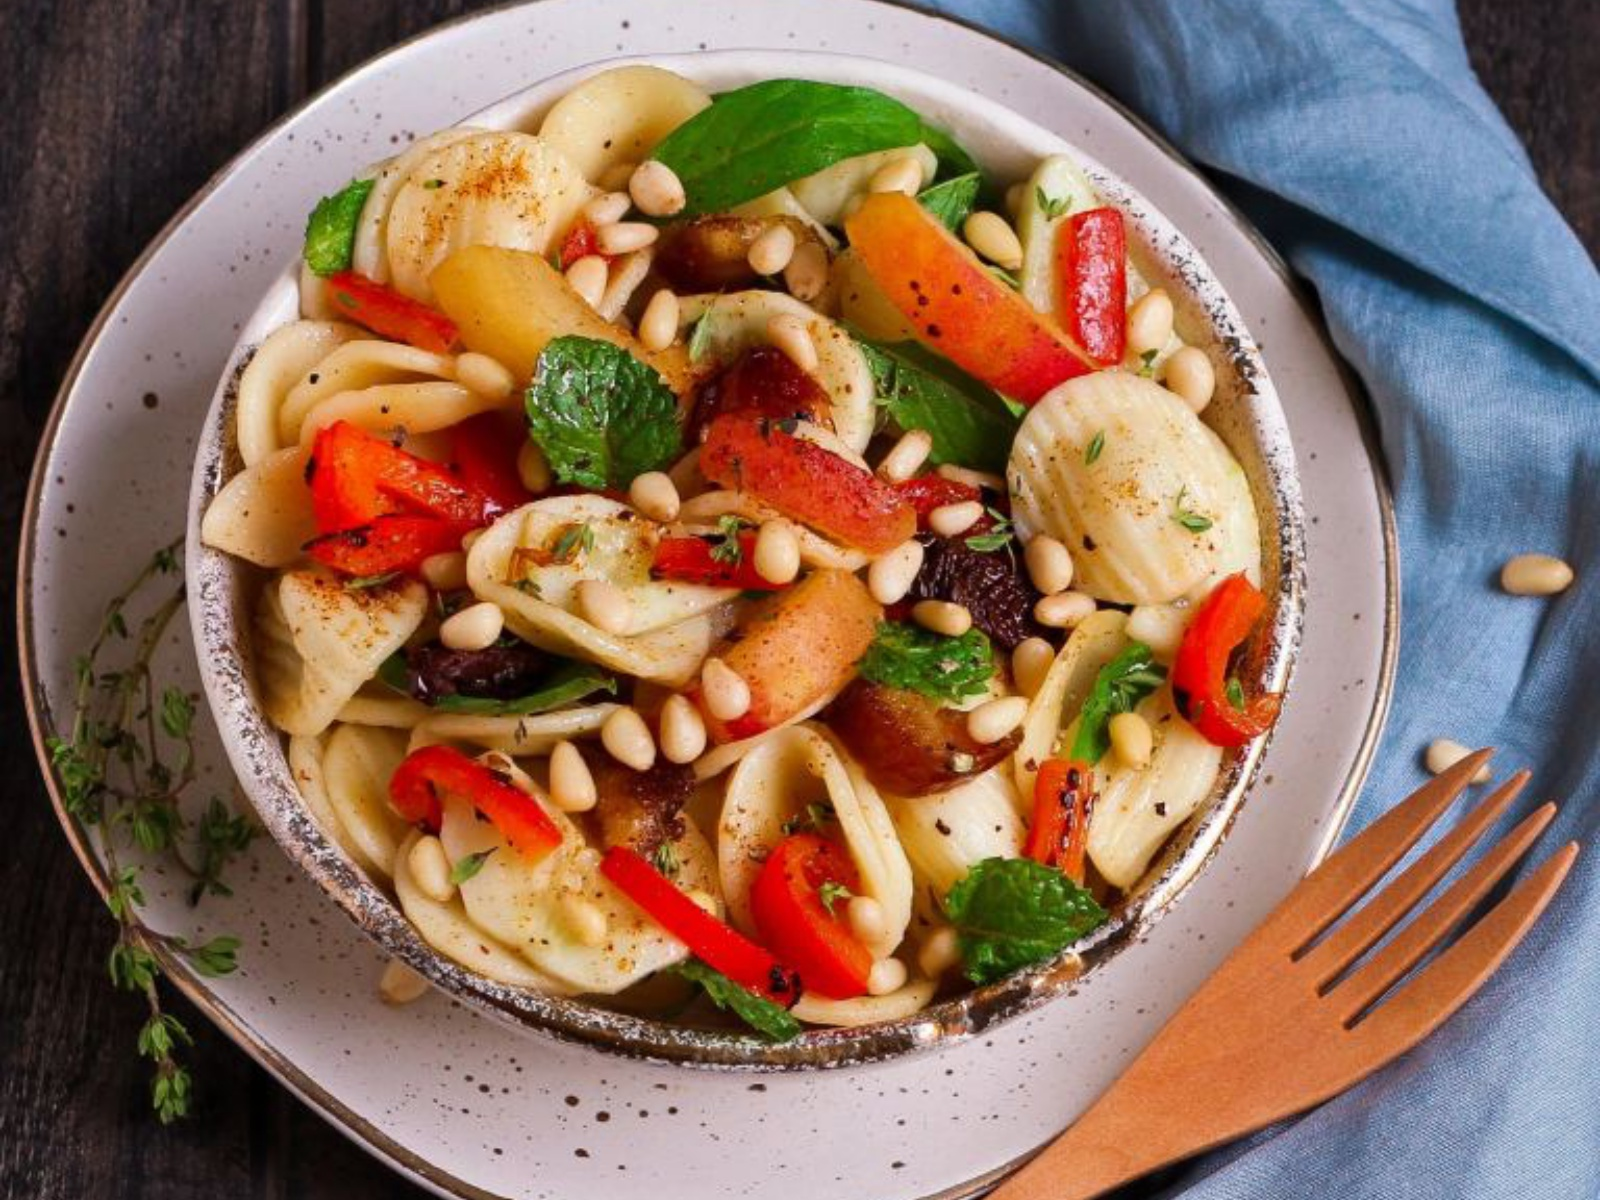 Apricot and Date Pasta Salad with fresh veggies